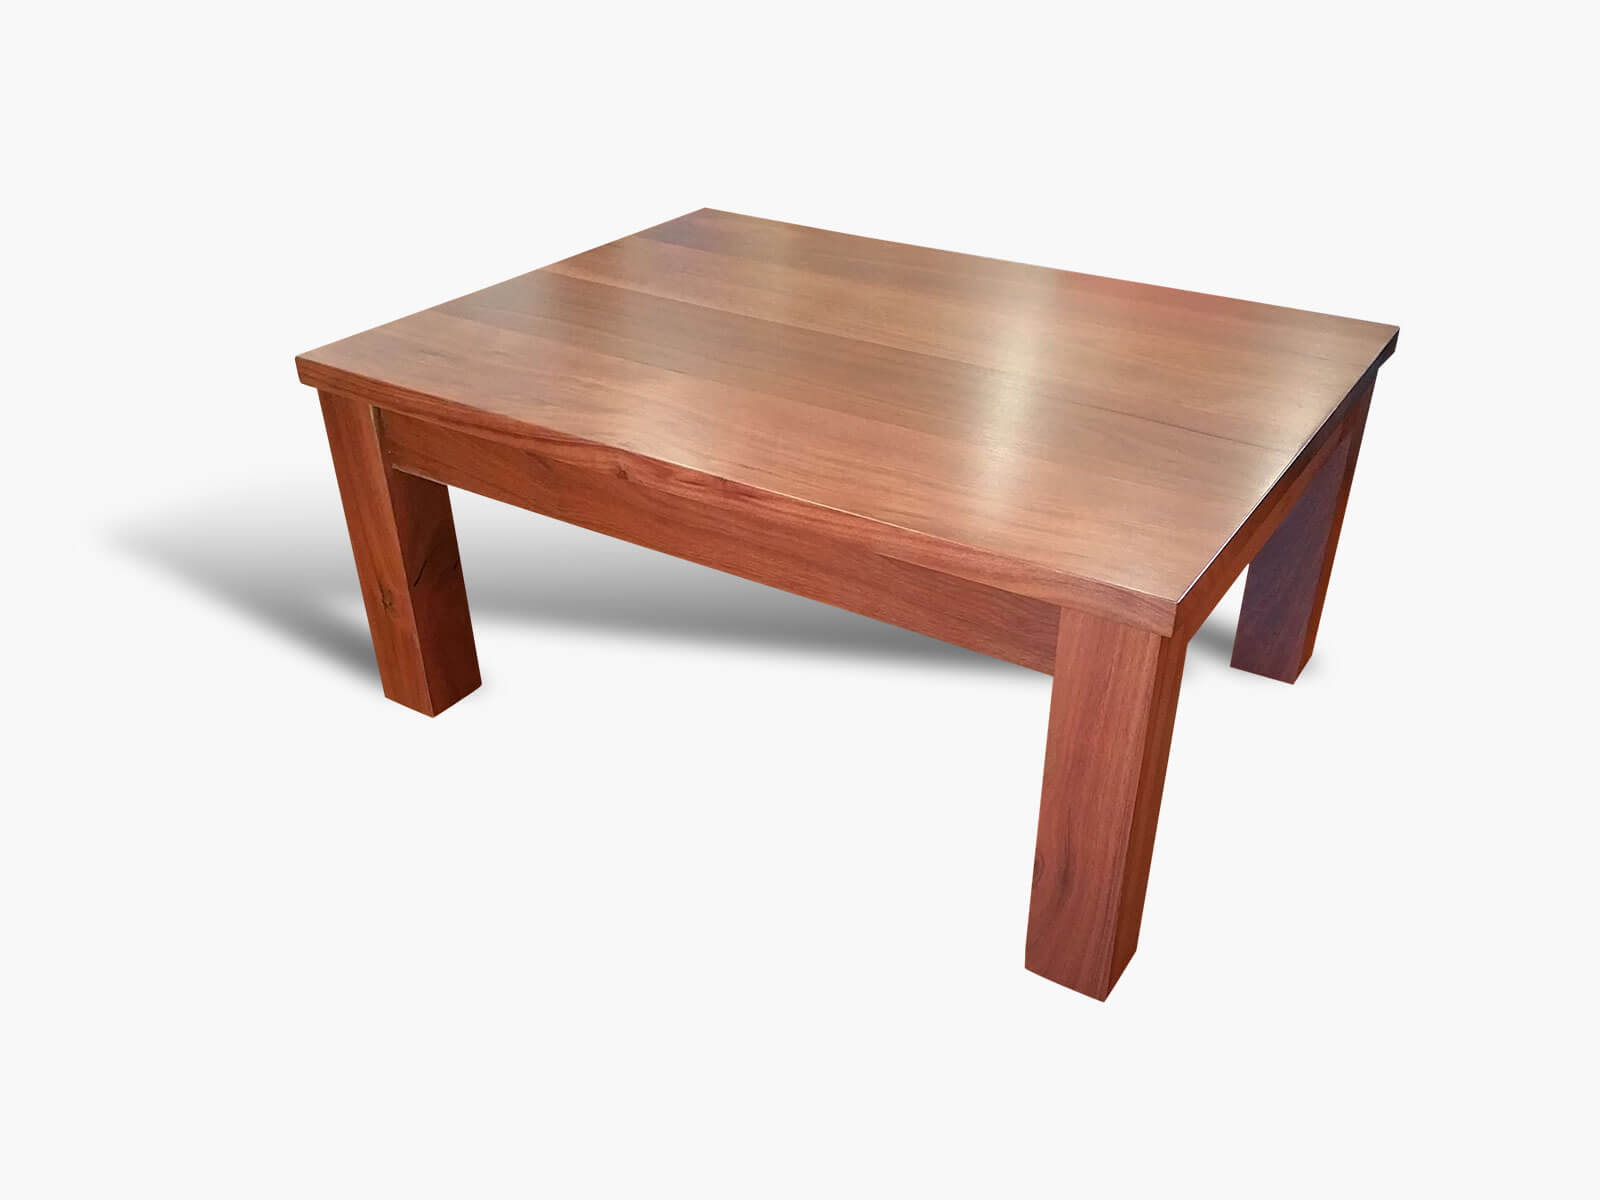 Applecross-Coffee Timber Furniture